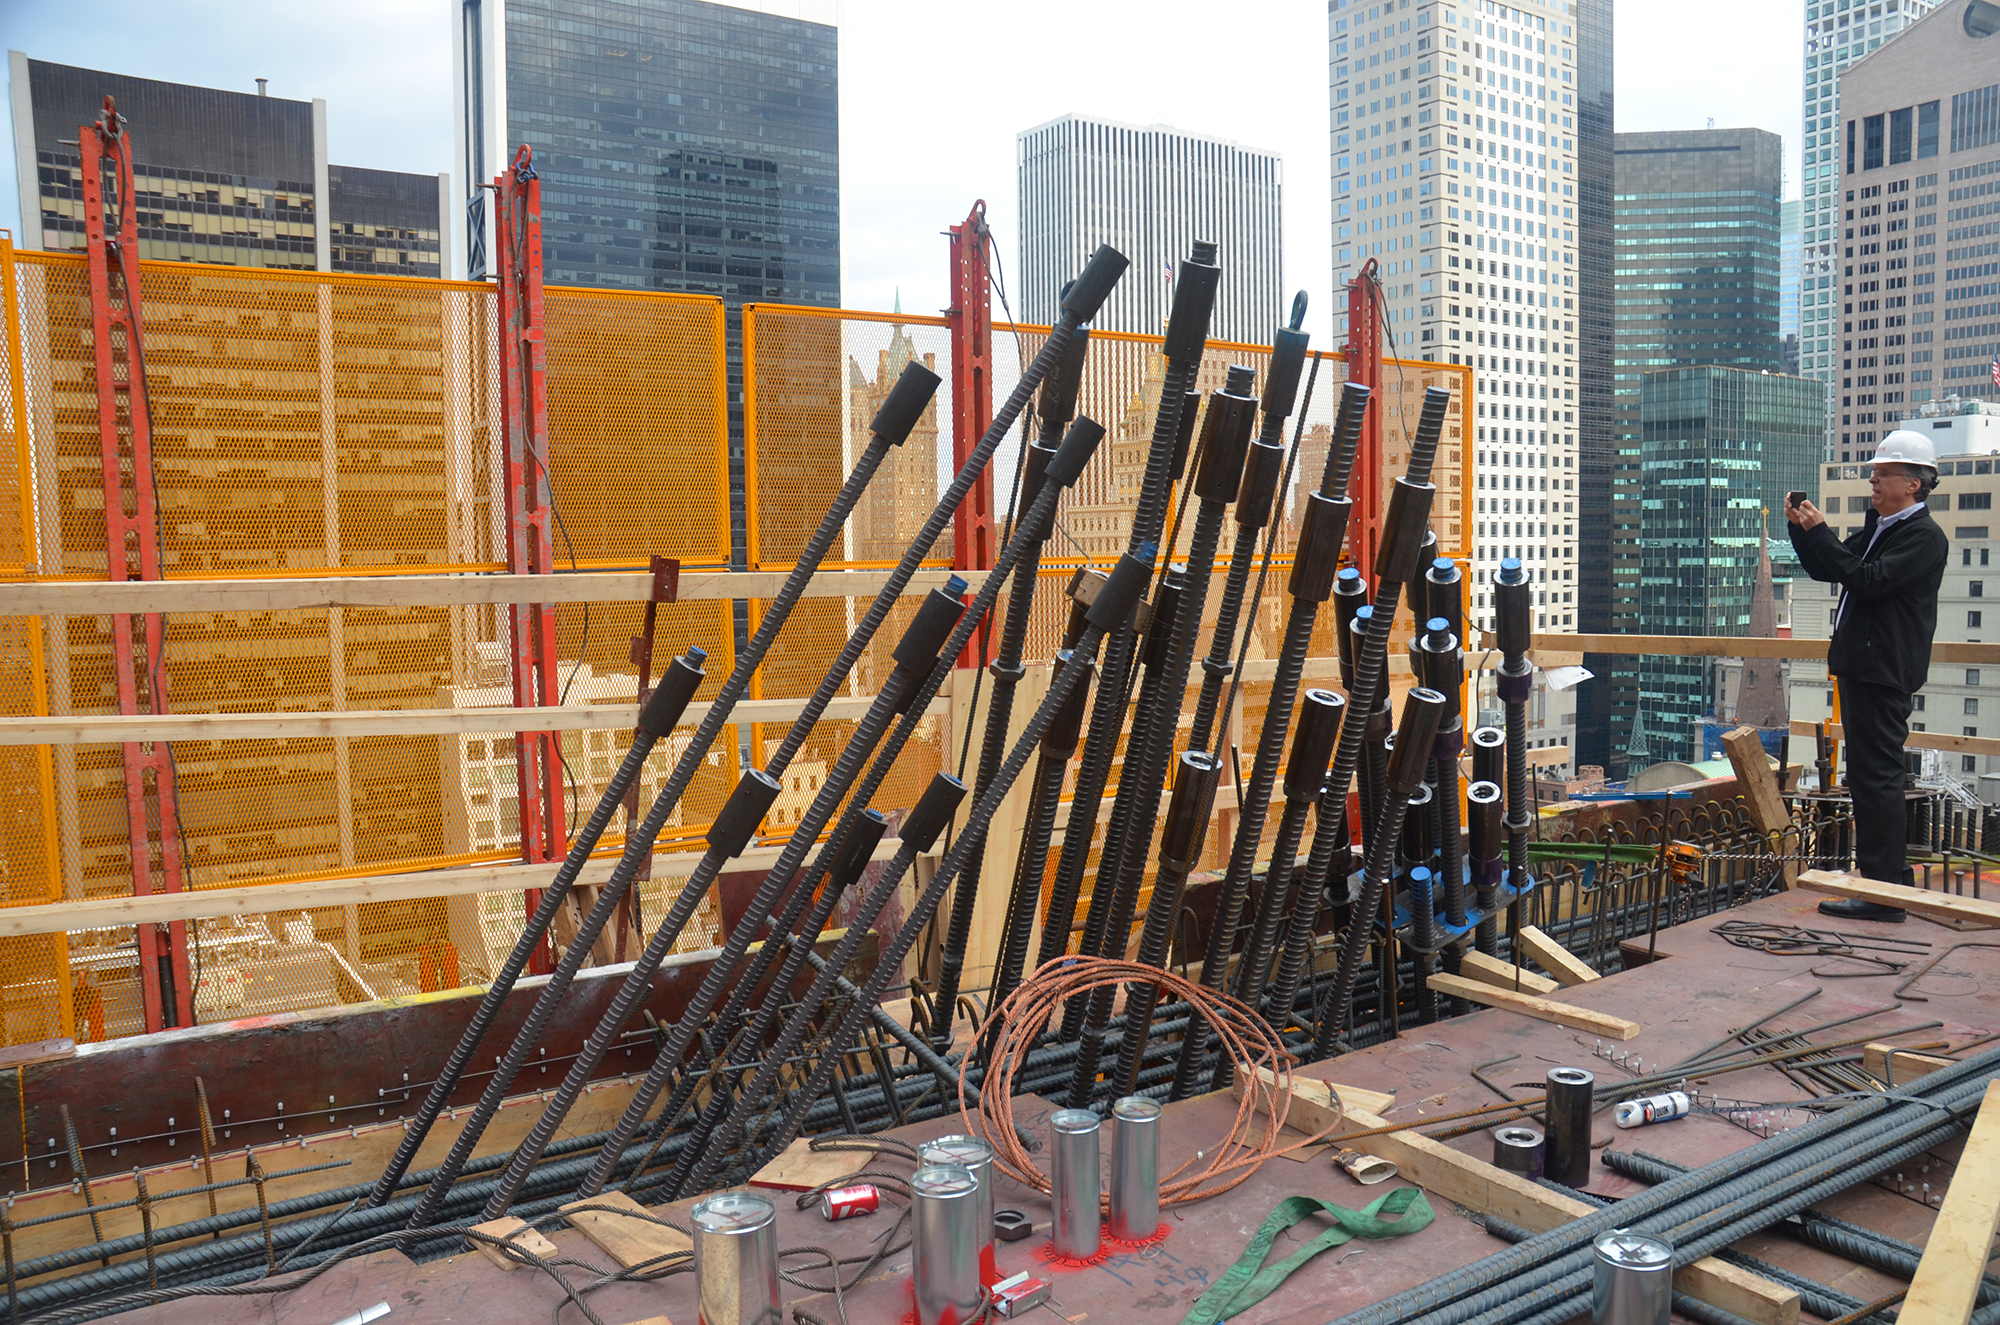 Pre-joined cables at 53W53